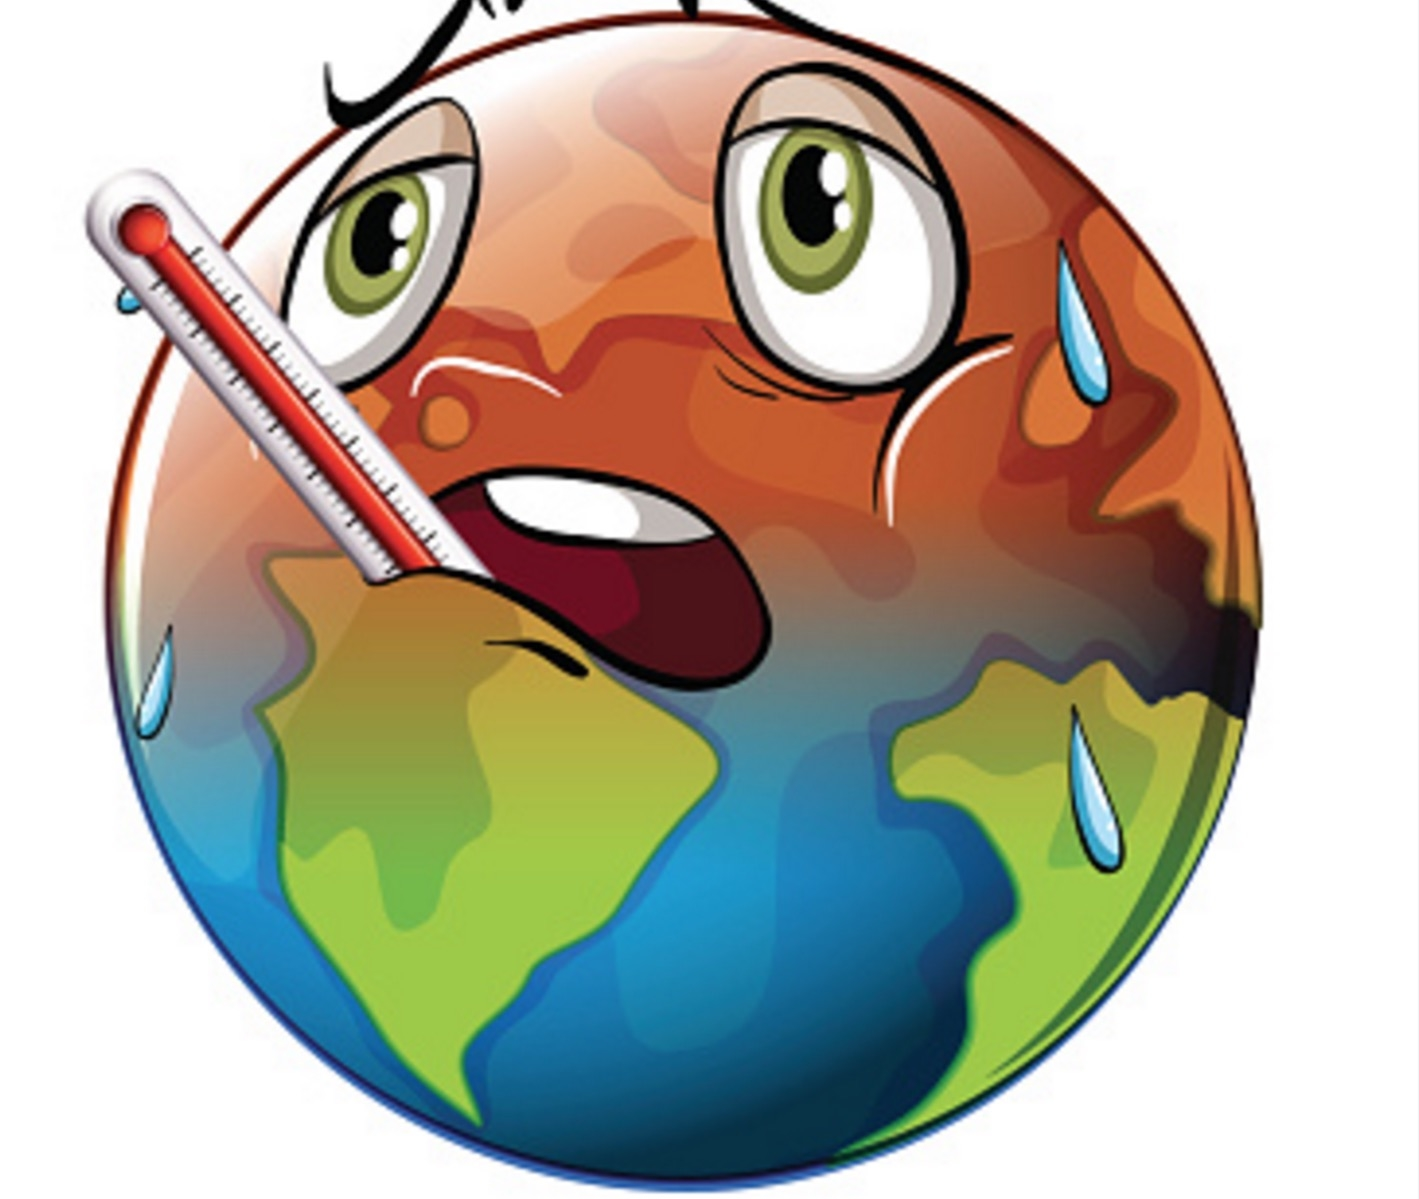 Change clipart climate. Topic suggestions steam city